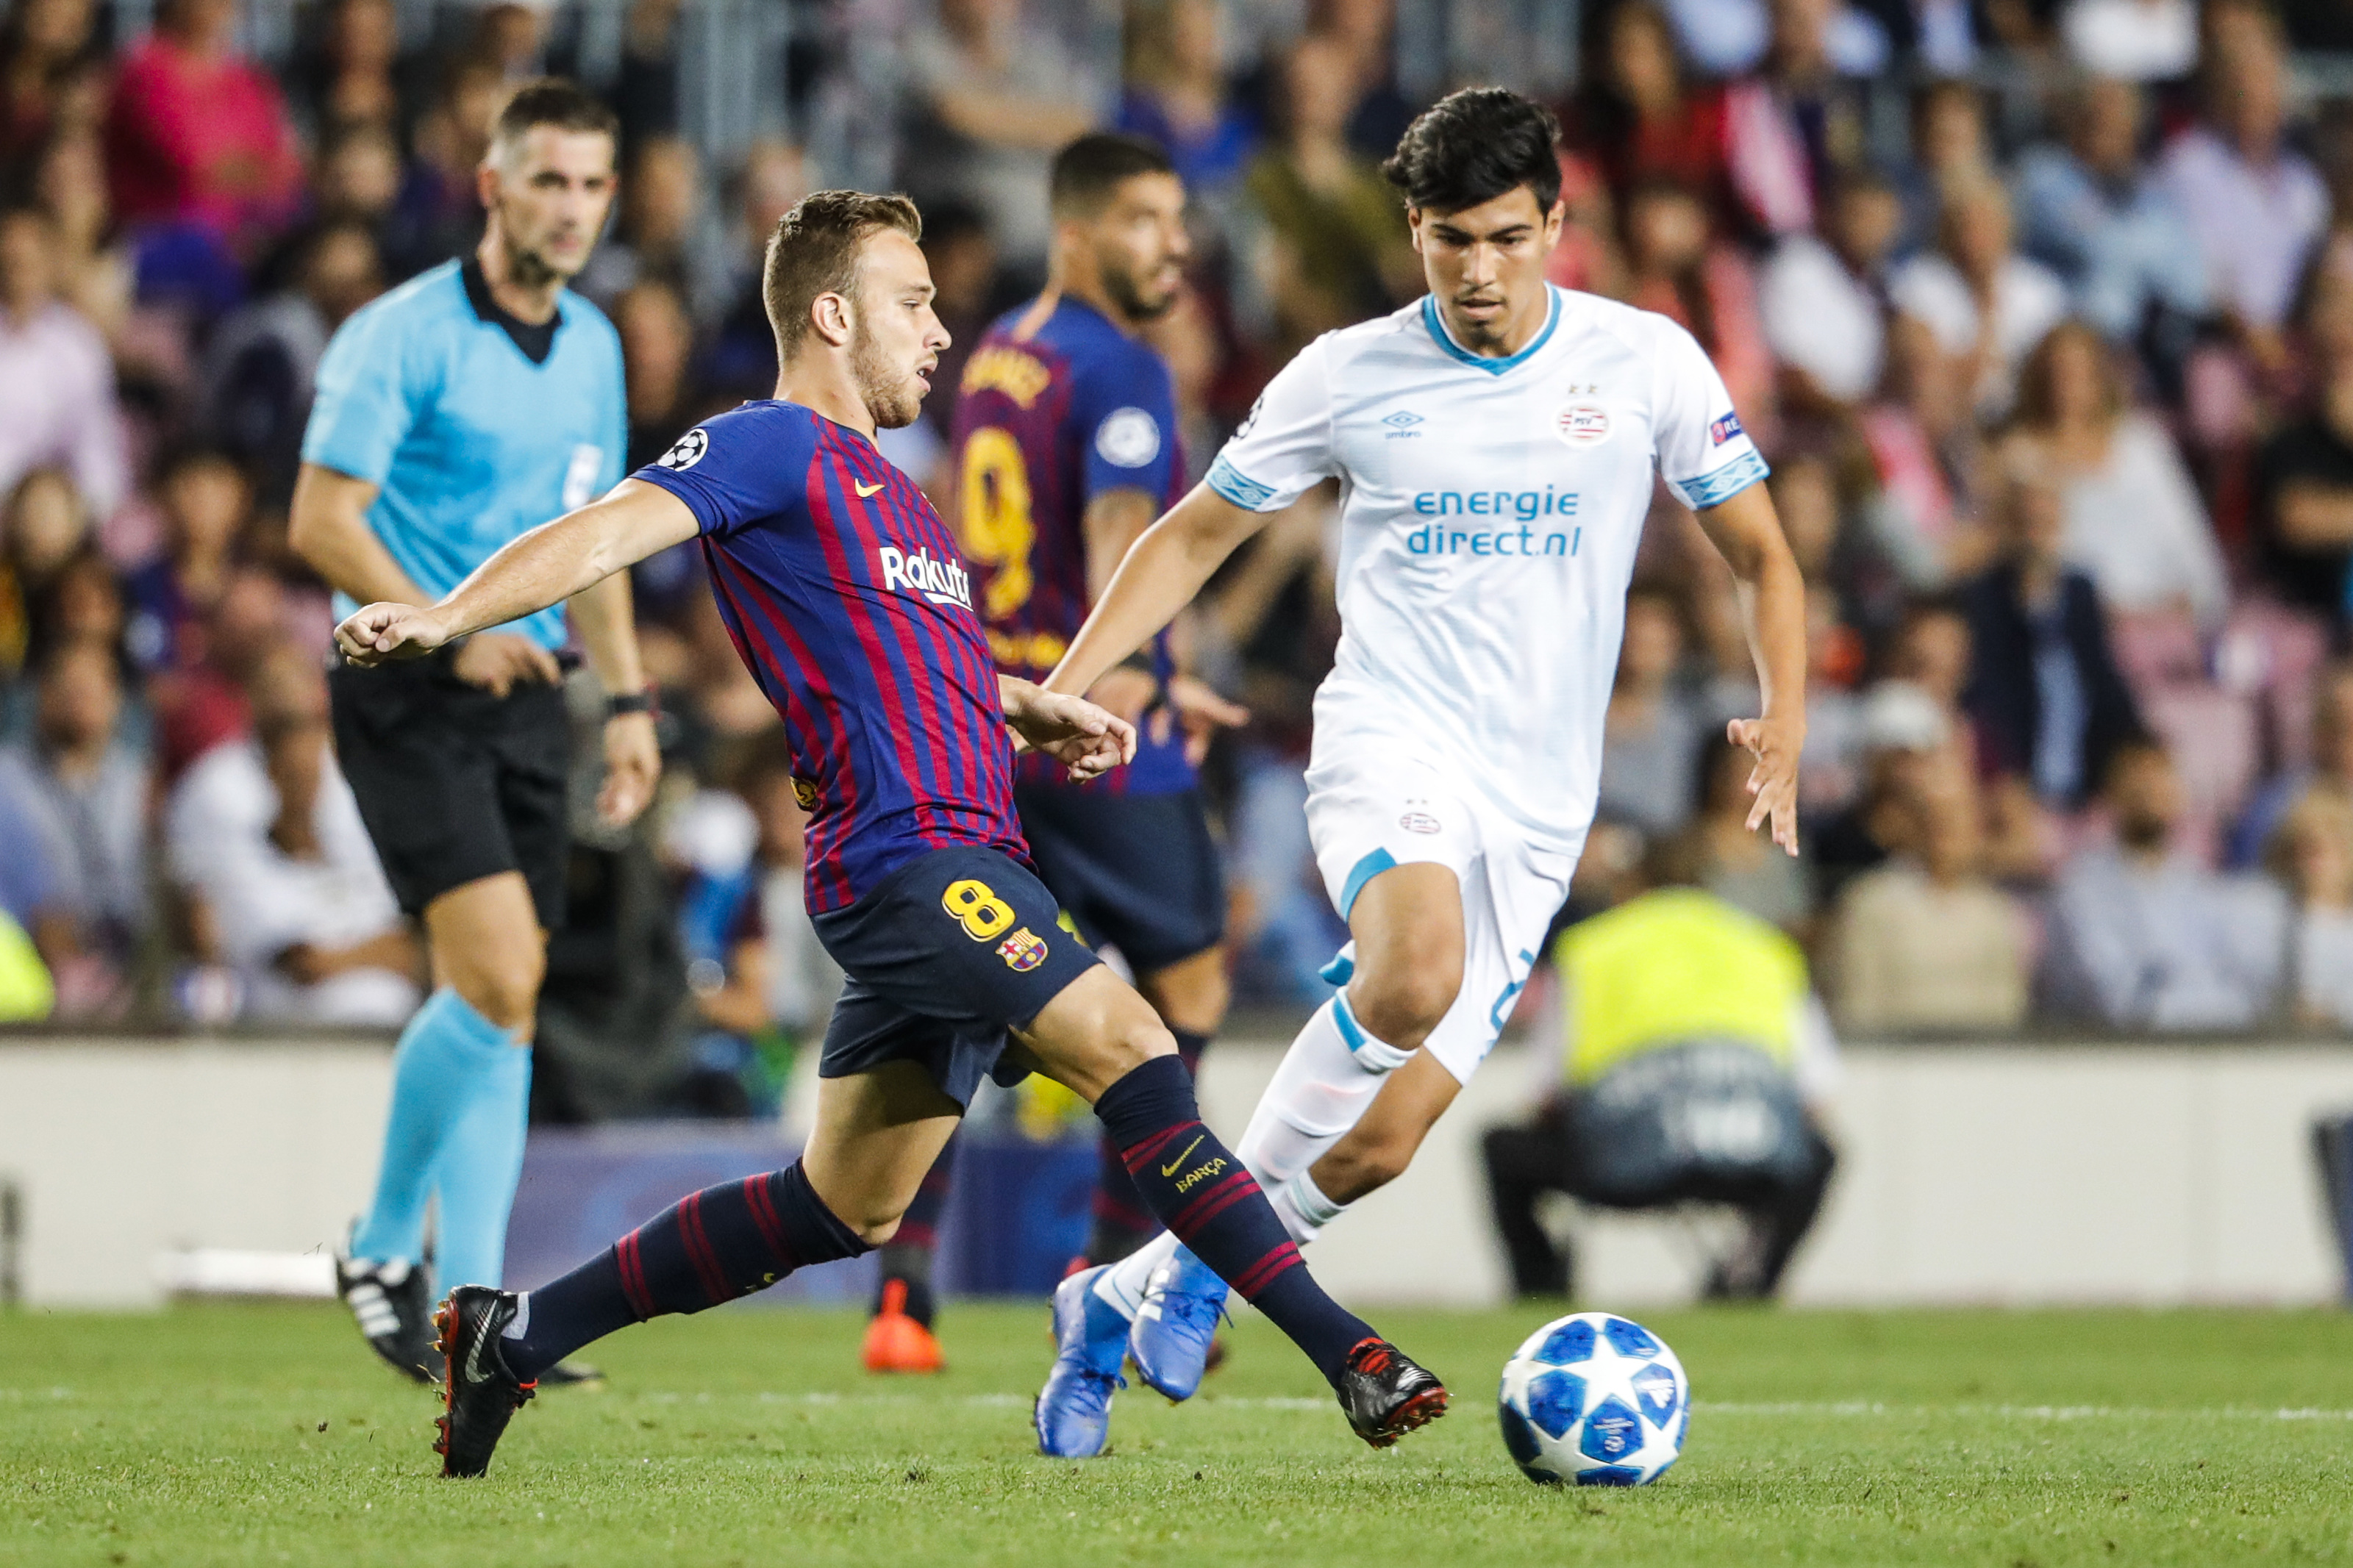 Barcelona Vs Girona Expected Starting Xi For New Catalan Derby